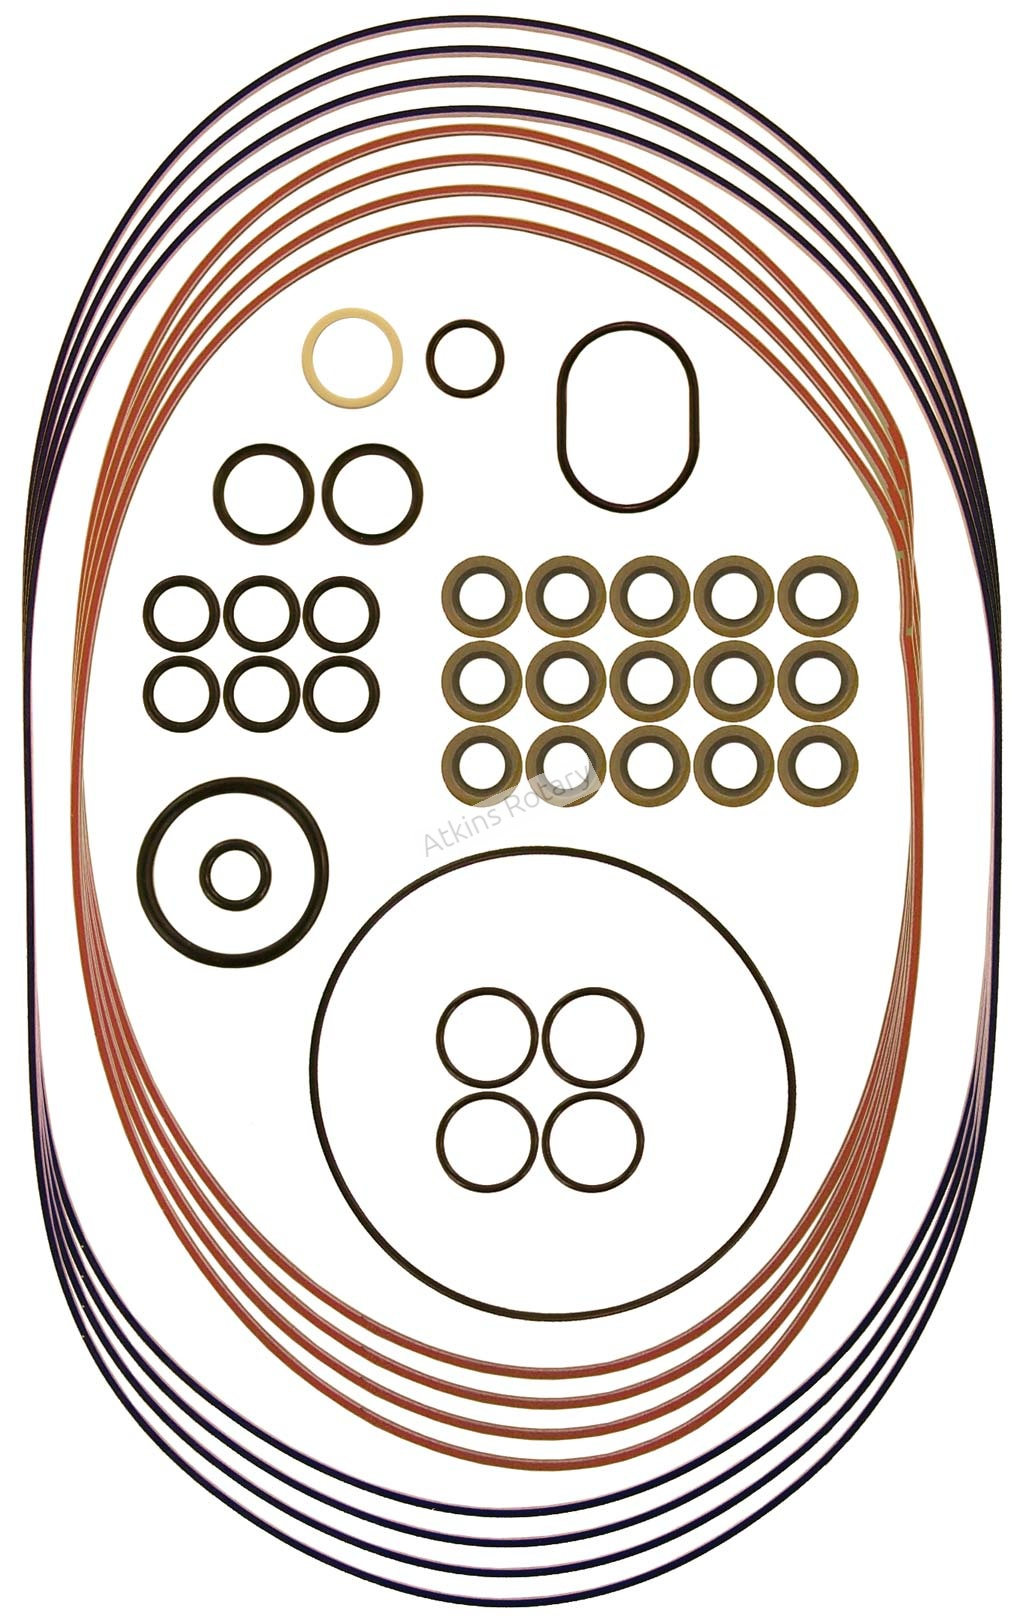 89-91 N/A Rx7 O-Ring Kit (N350-10-S60)